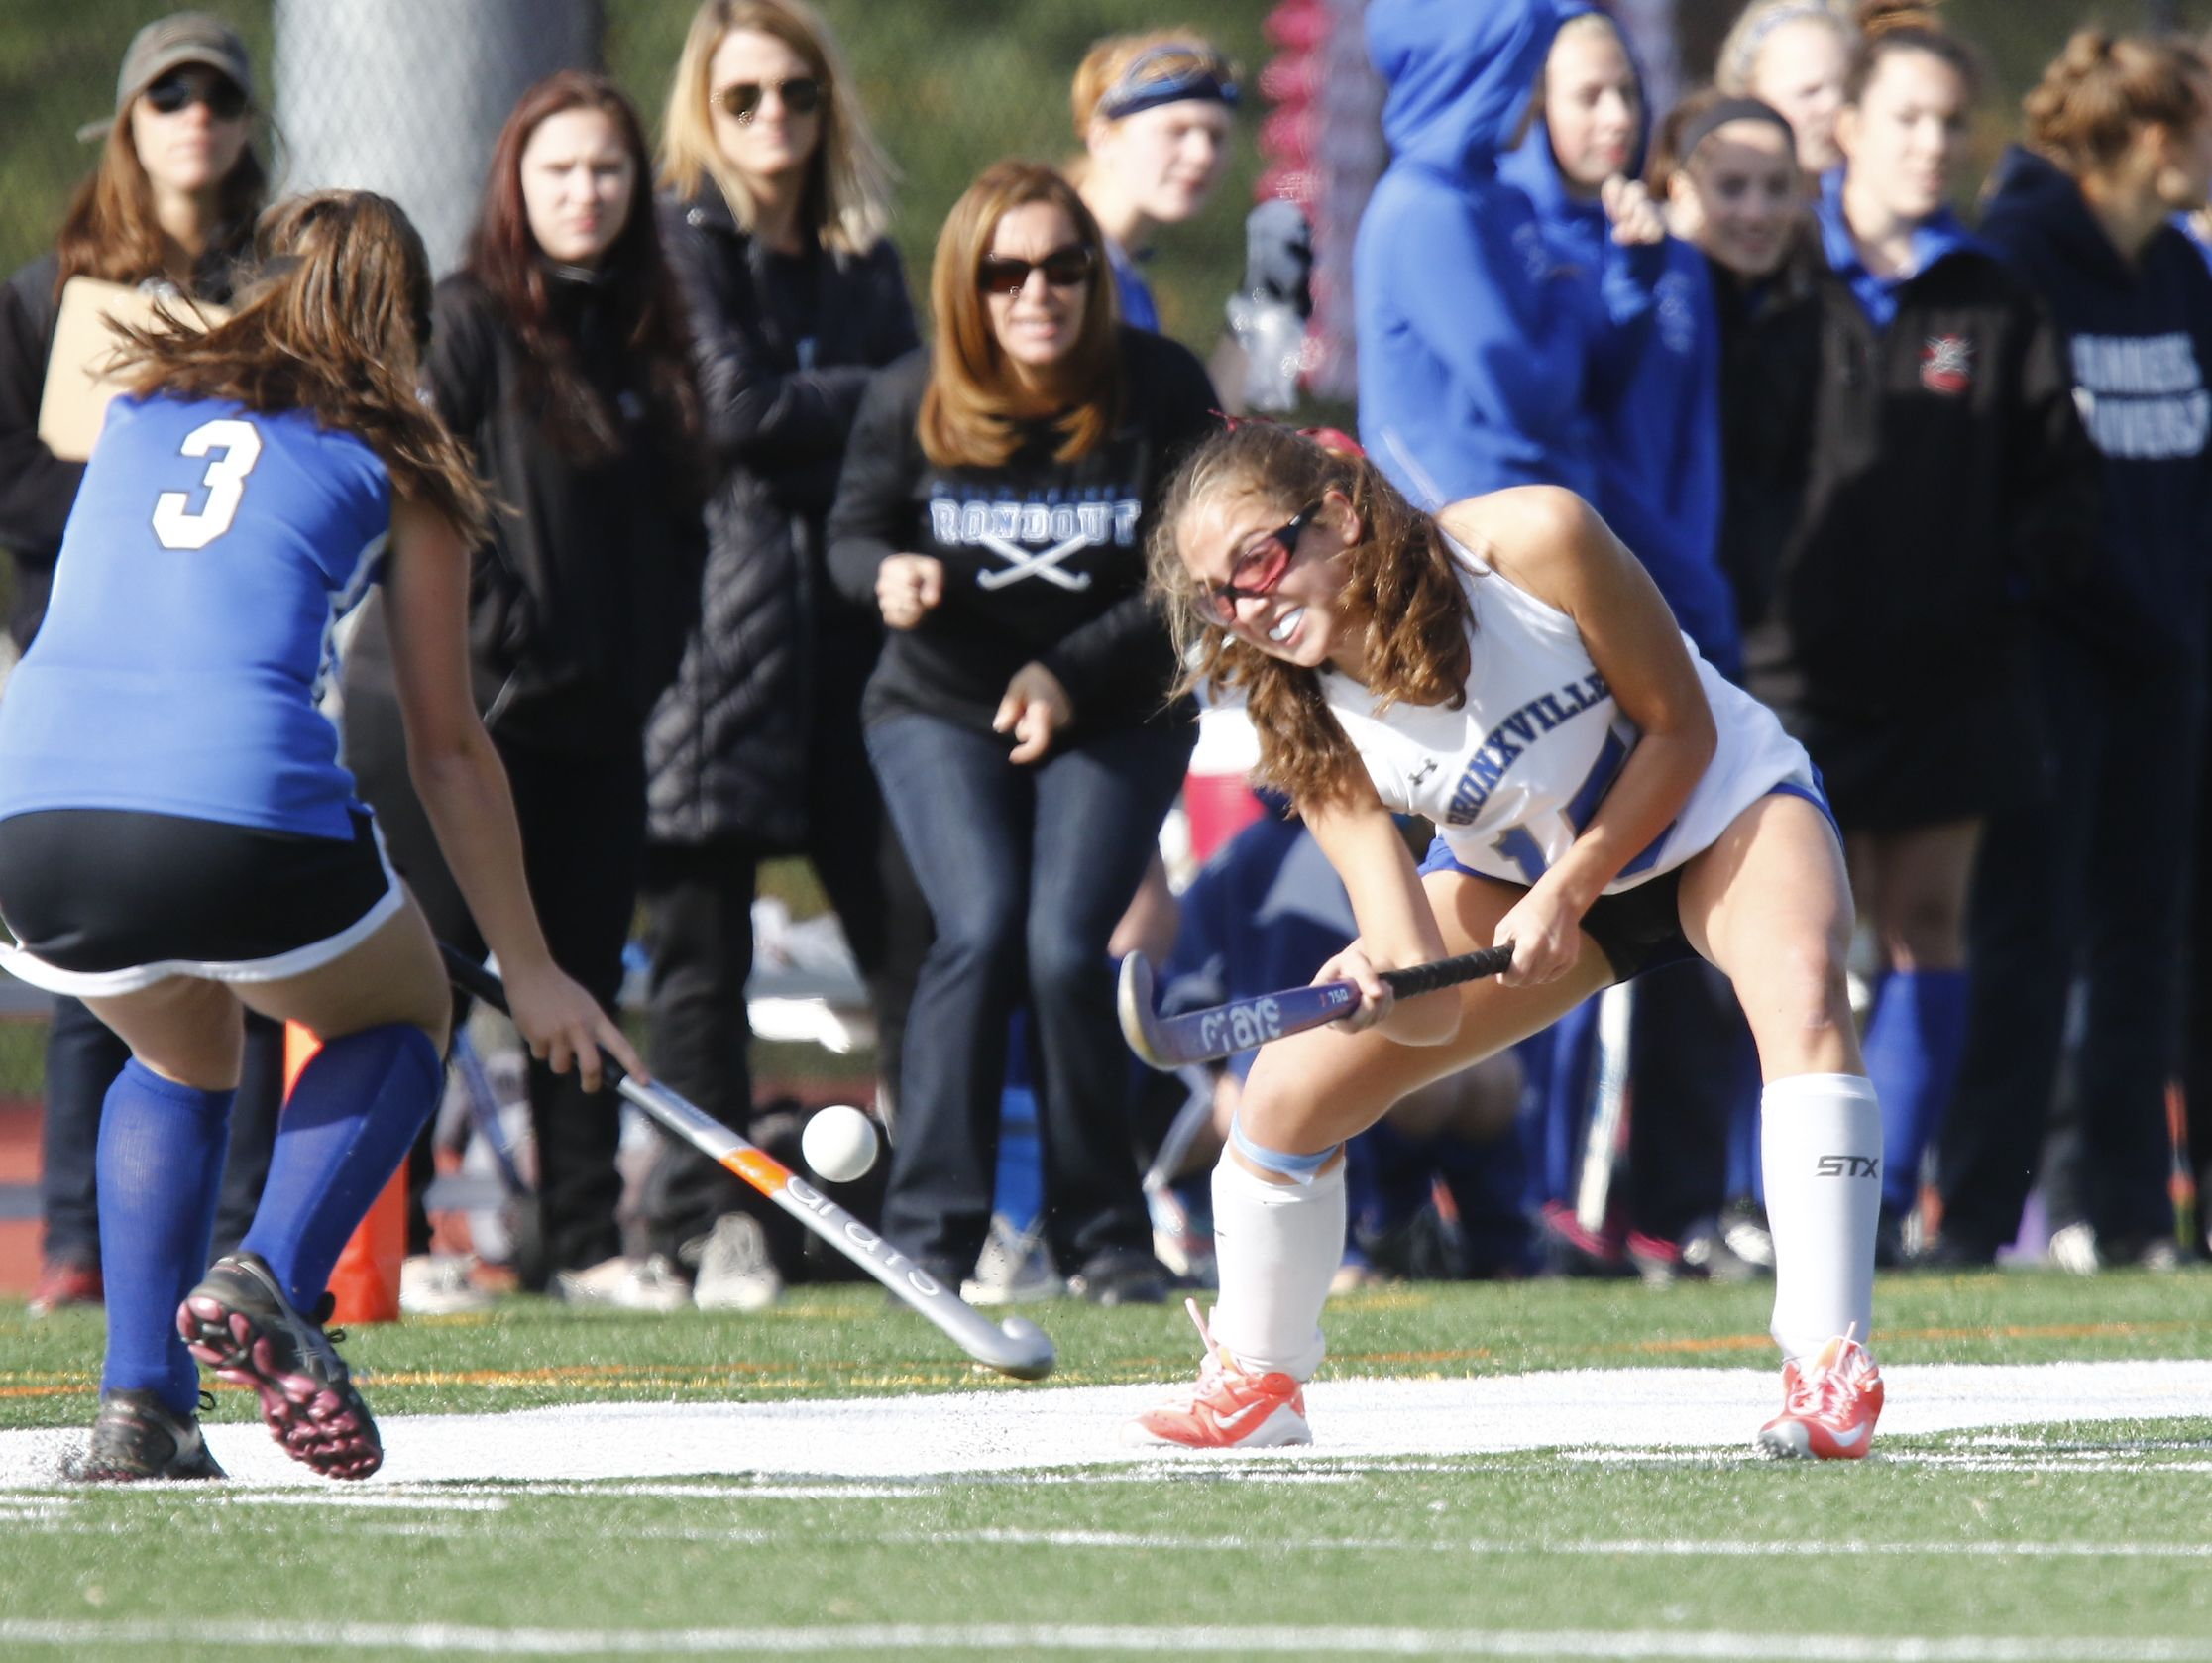 Bronxville's Claire Kramer (15) feeds a pass up the side-line during their 2-0 win over Roundout Valley in the Class C regional championship field hockey game at Valhalla High School on Saturday, November 5, 2016.